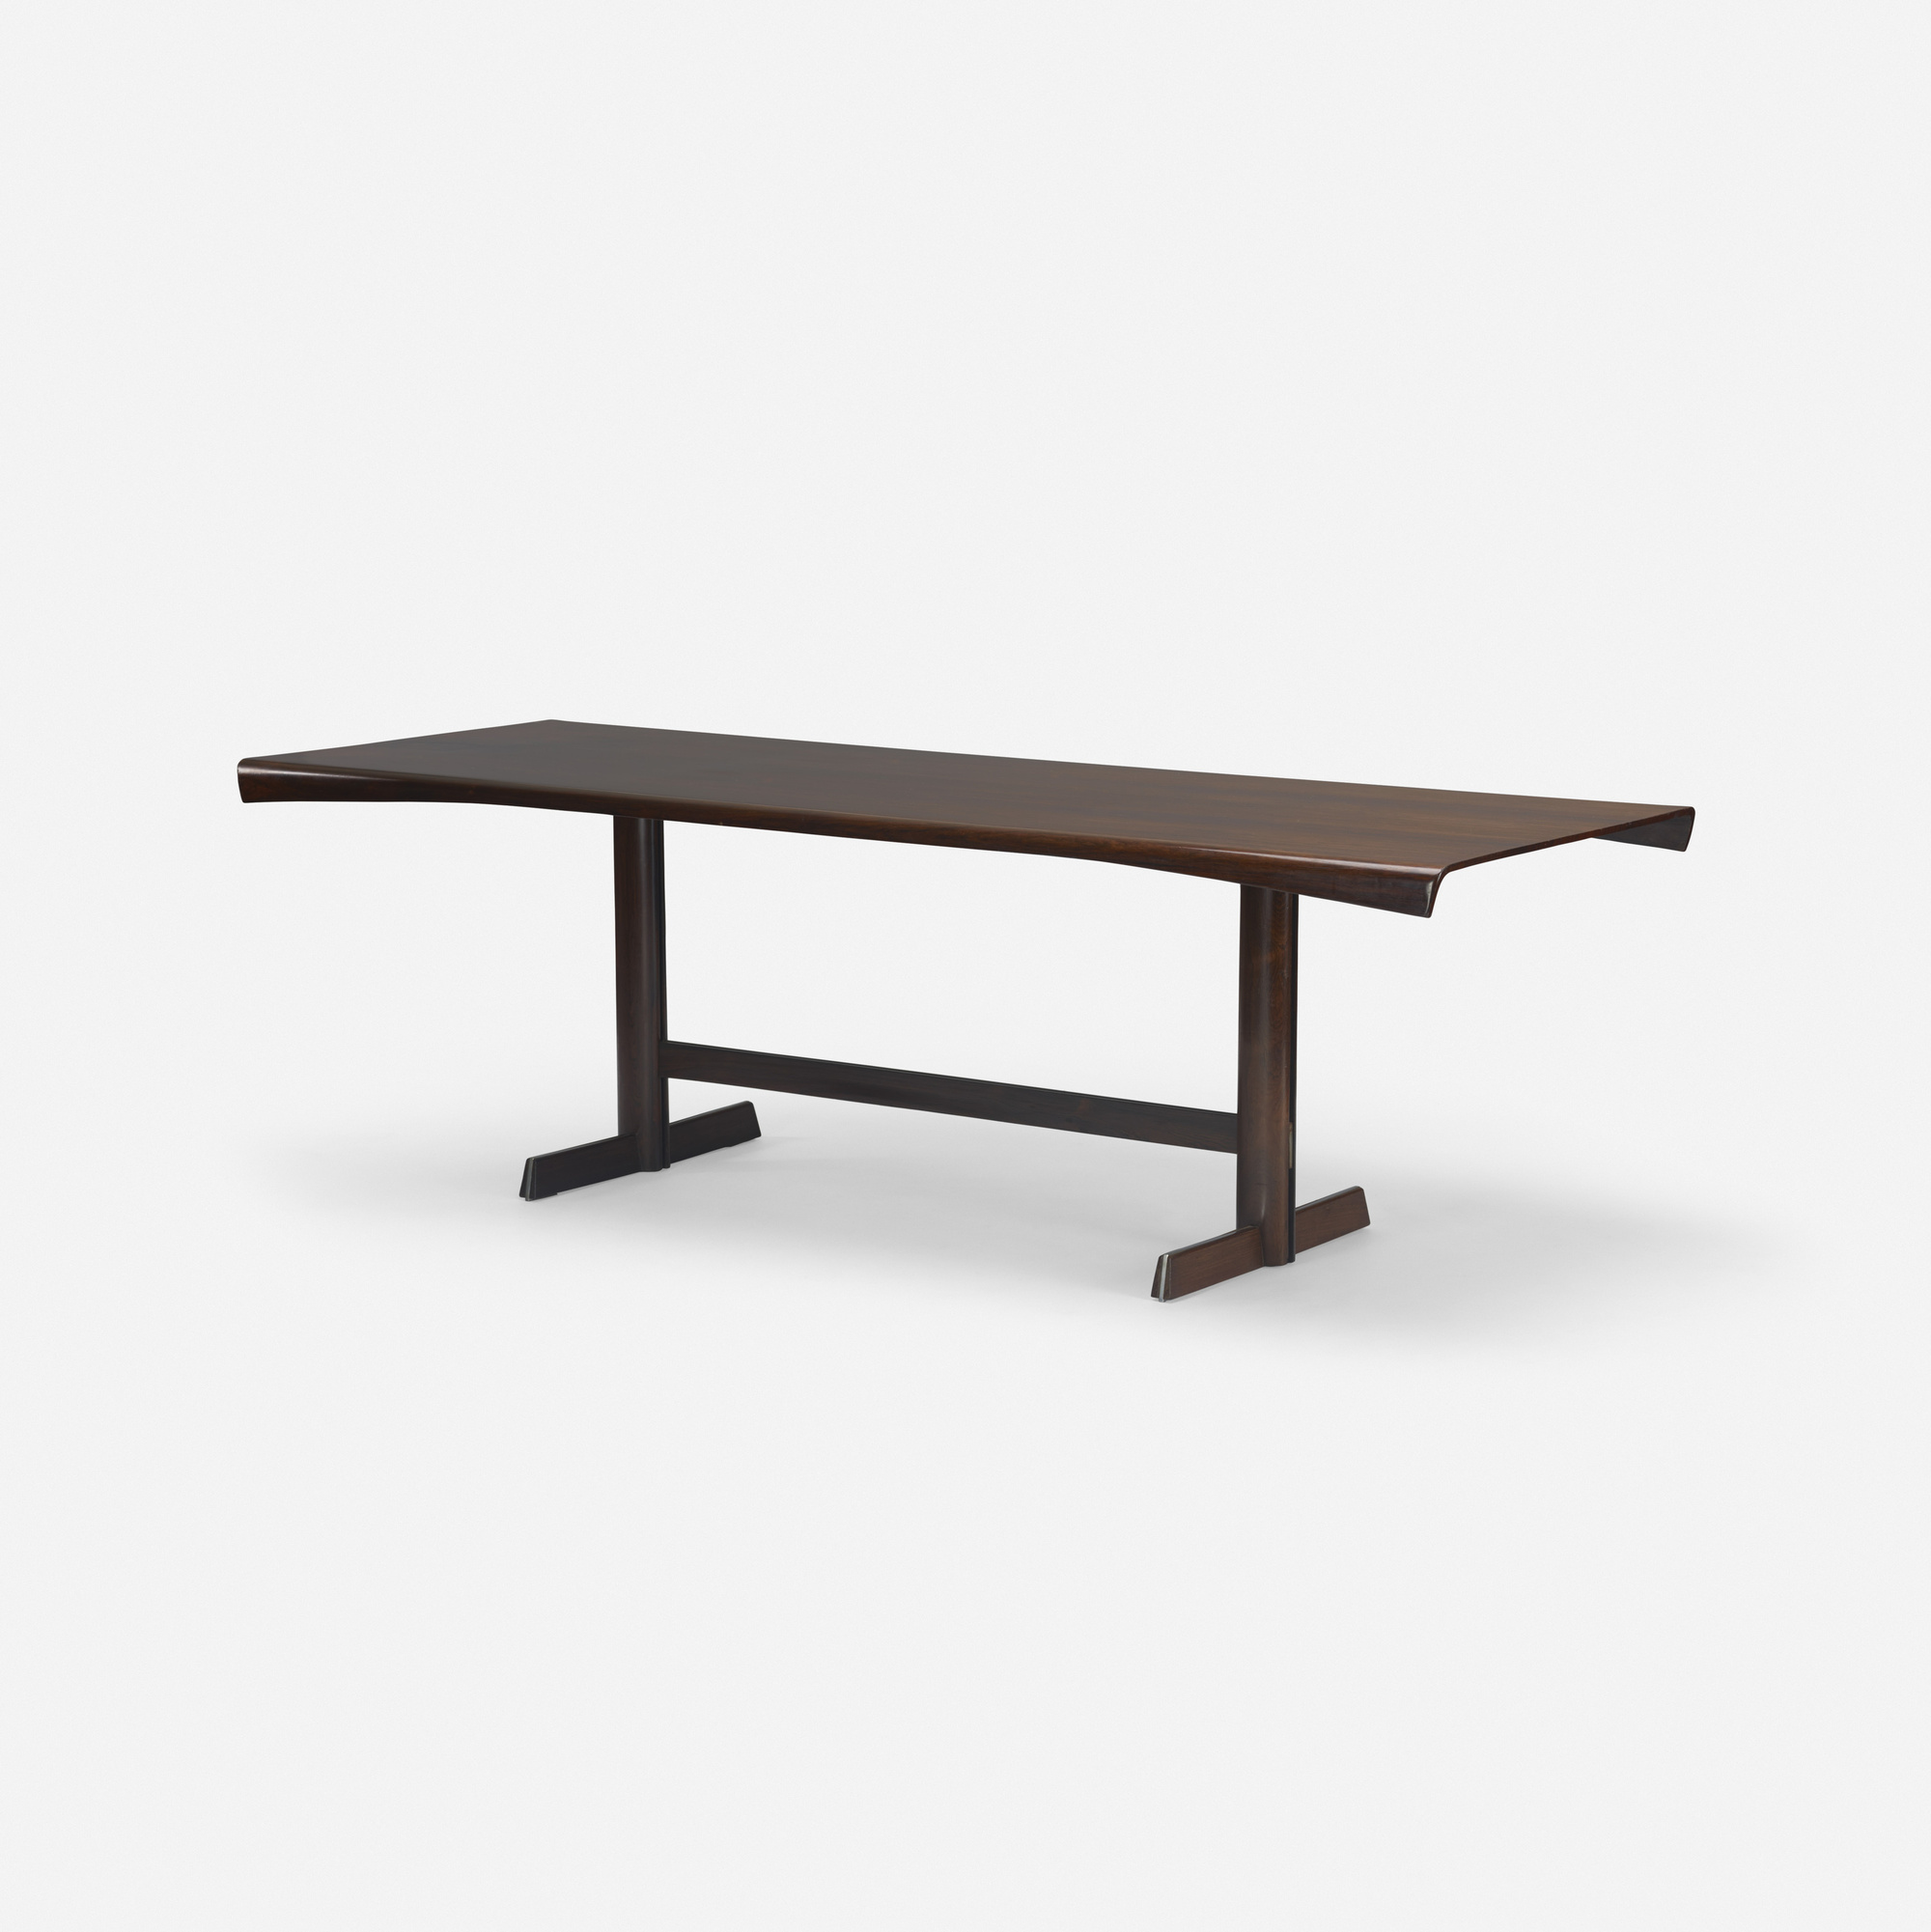 217: Jorge Zalszupin / dining table (1 of 2)